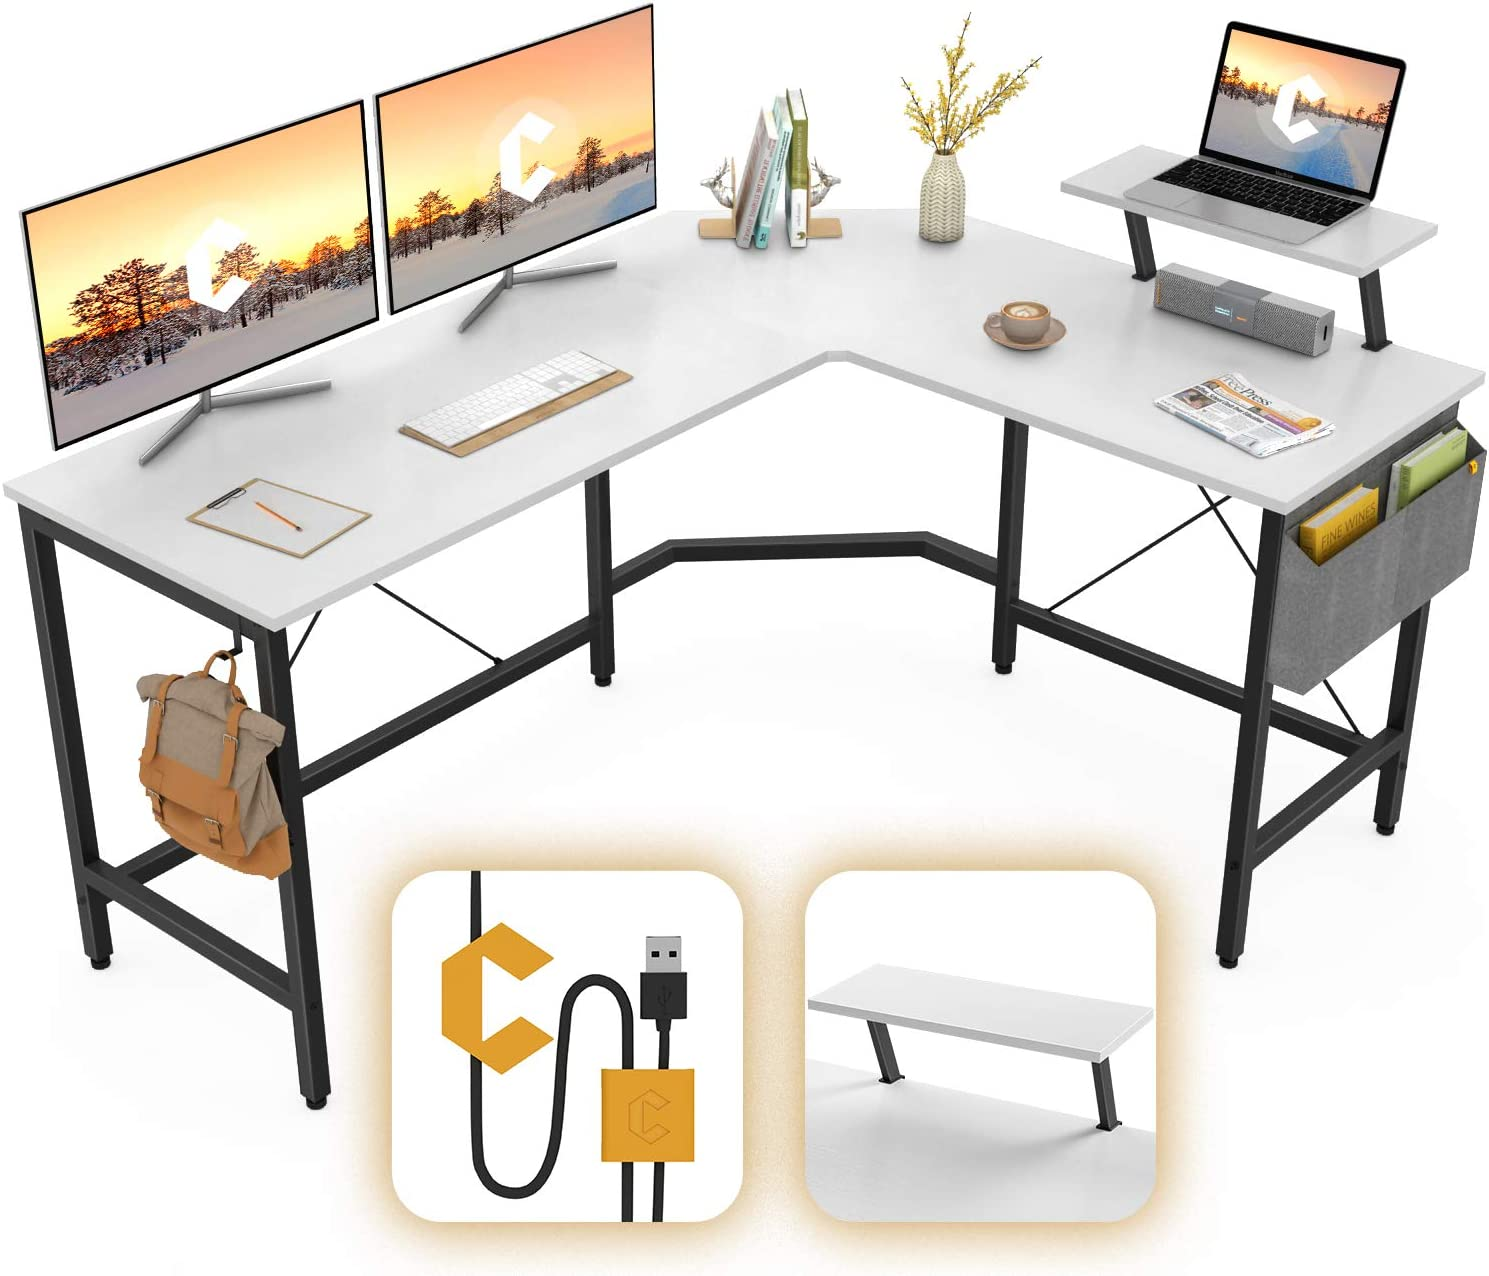 Cubiker Modern L-Shaped Computer Office Desk, Corner Gaming Desk with Monitor Stand, Home Study Writing Table Workstation for Small Spaces, White: Kitchen & Dining